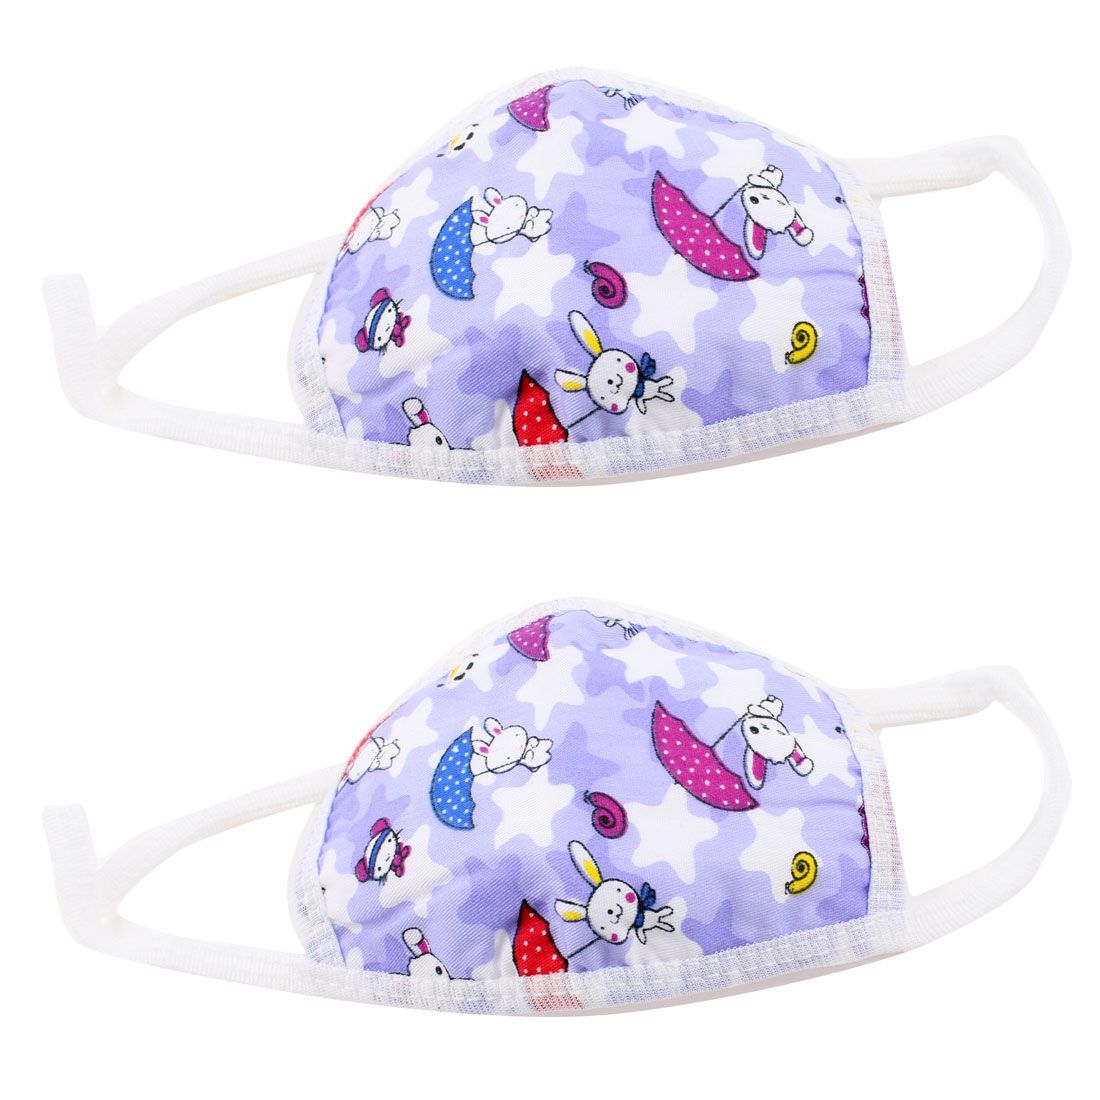 2 Pcs Blue Dust Protective Earloop Face Mask Mouth Nose Muffle for Child